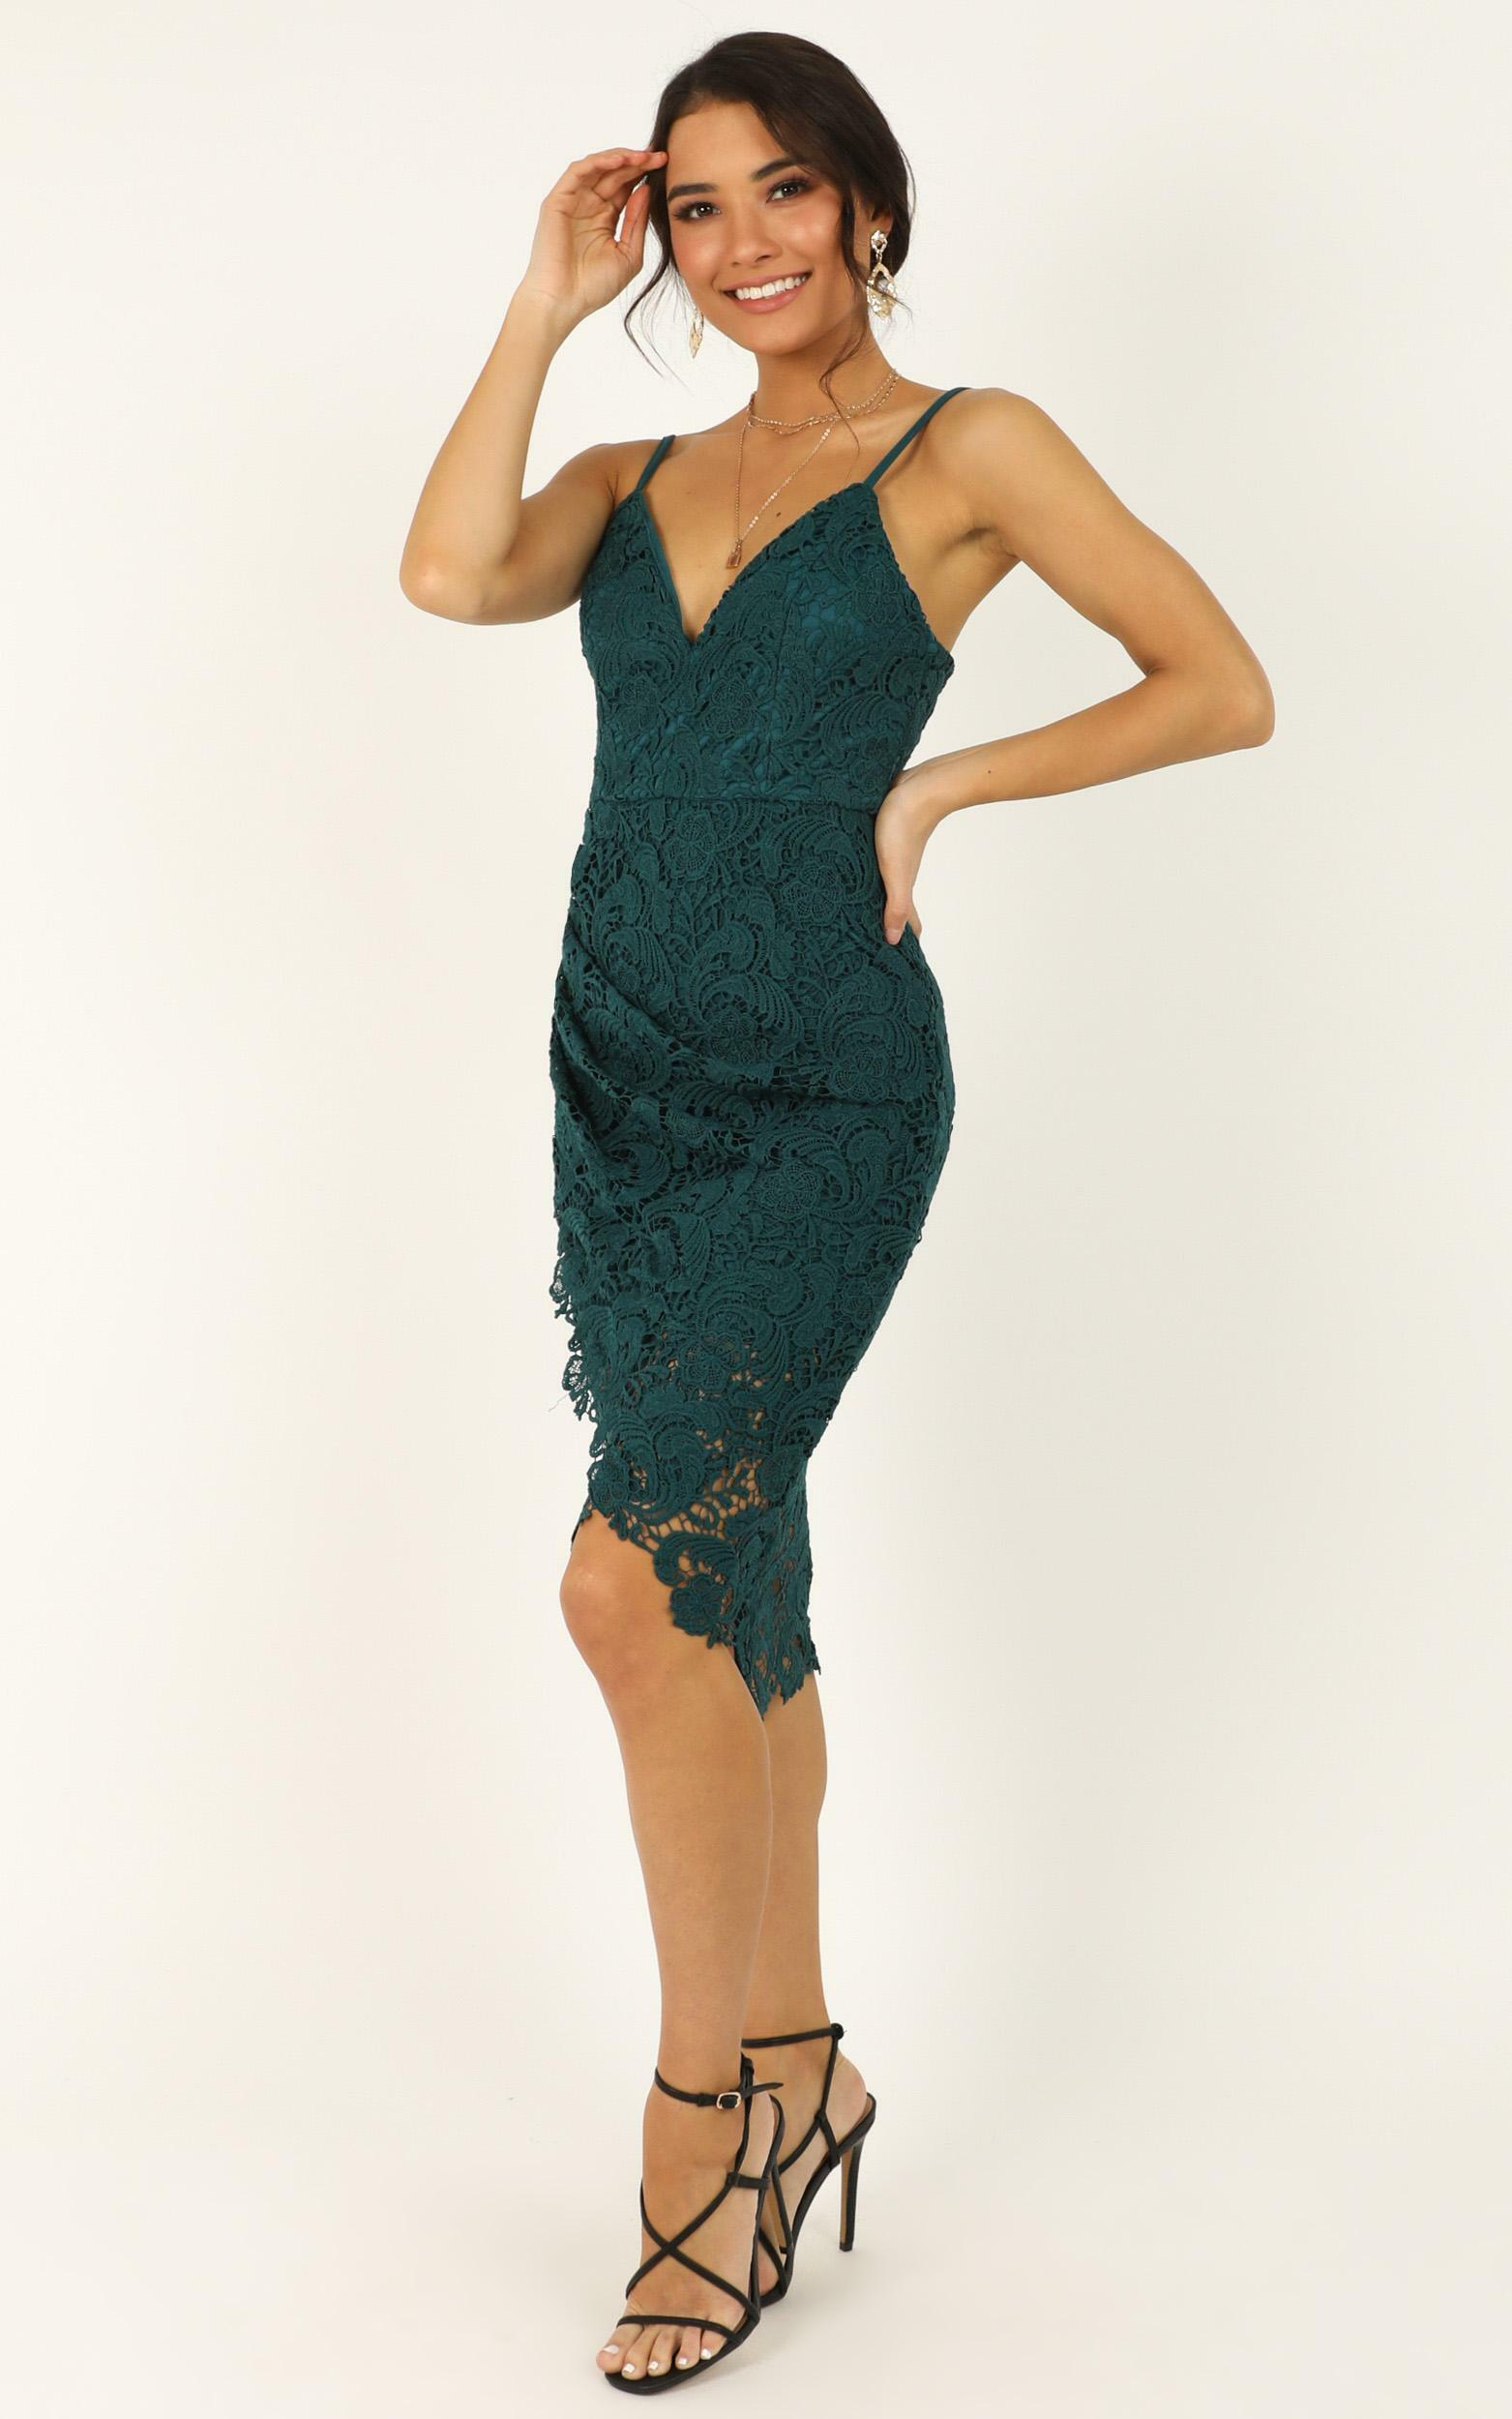 Typical Lover Dress in emerald lace - 20 (XXXXL), Green, hi-res image number null